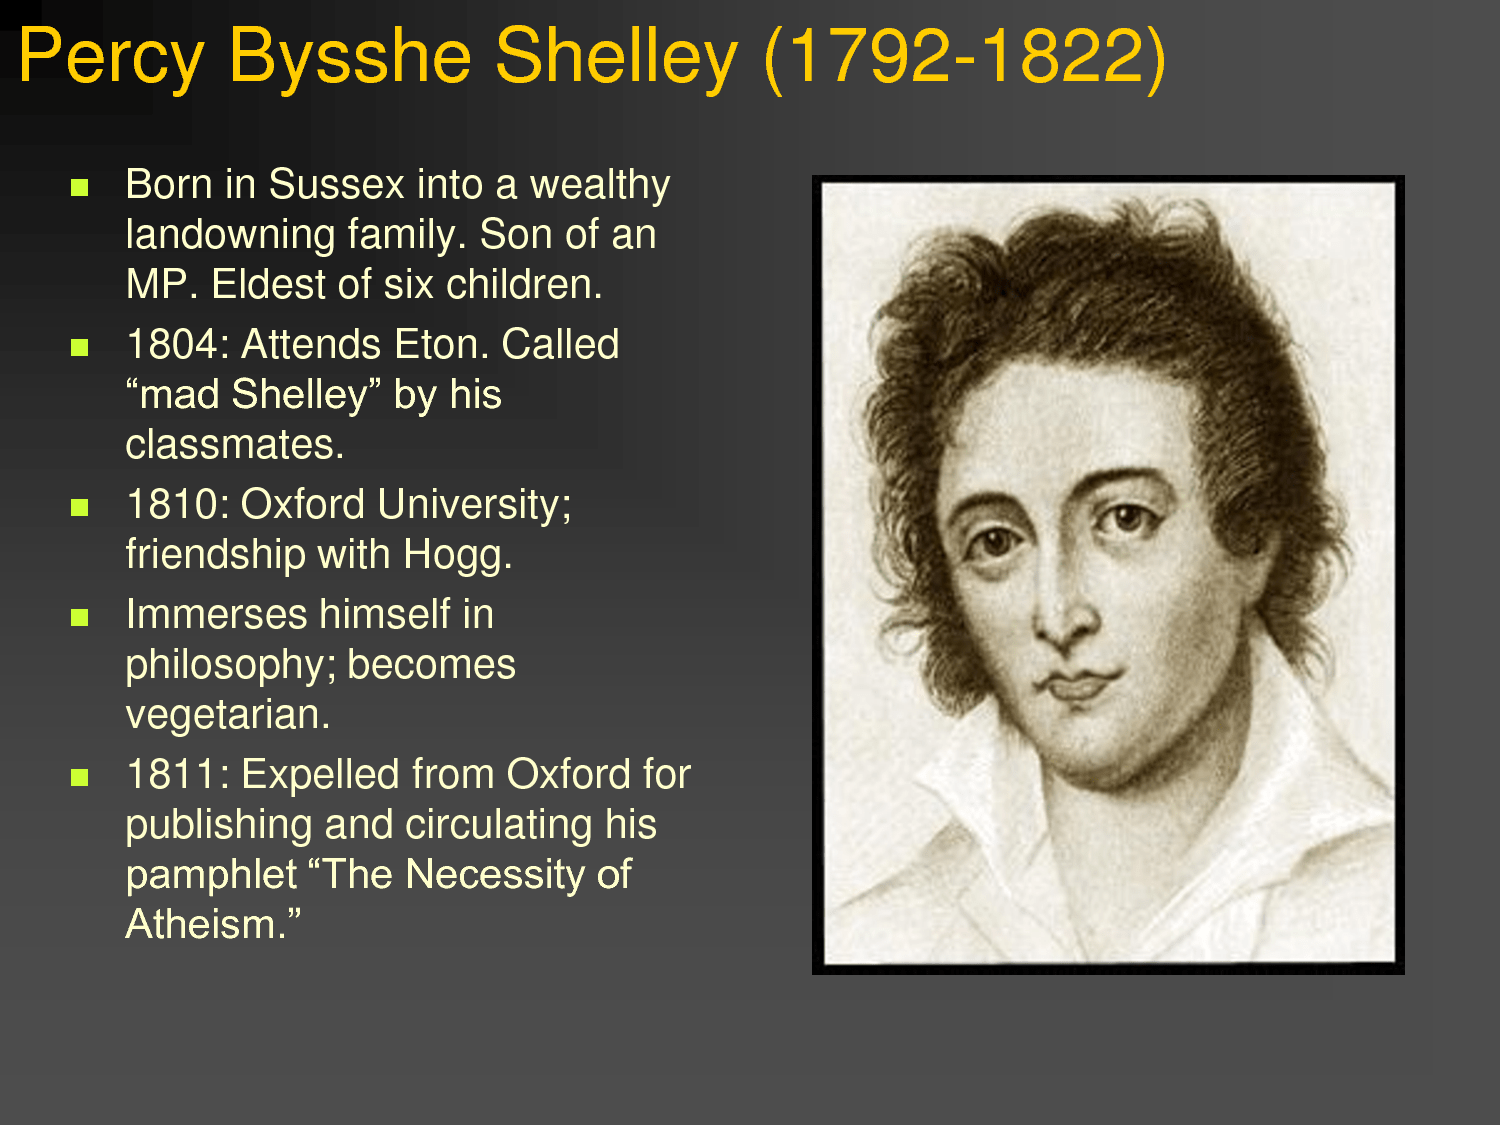 Percy bysshe shelley http cdn quotesgram com img 7 43 690086984 percy_shelley_bio_docstoc_com jpeg percy bysshe shelley pinterest poet